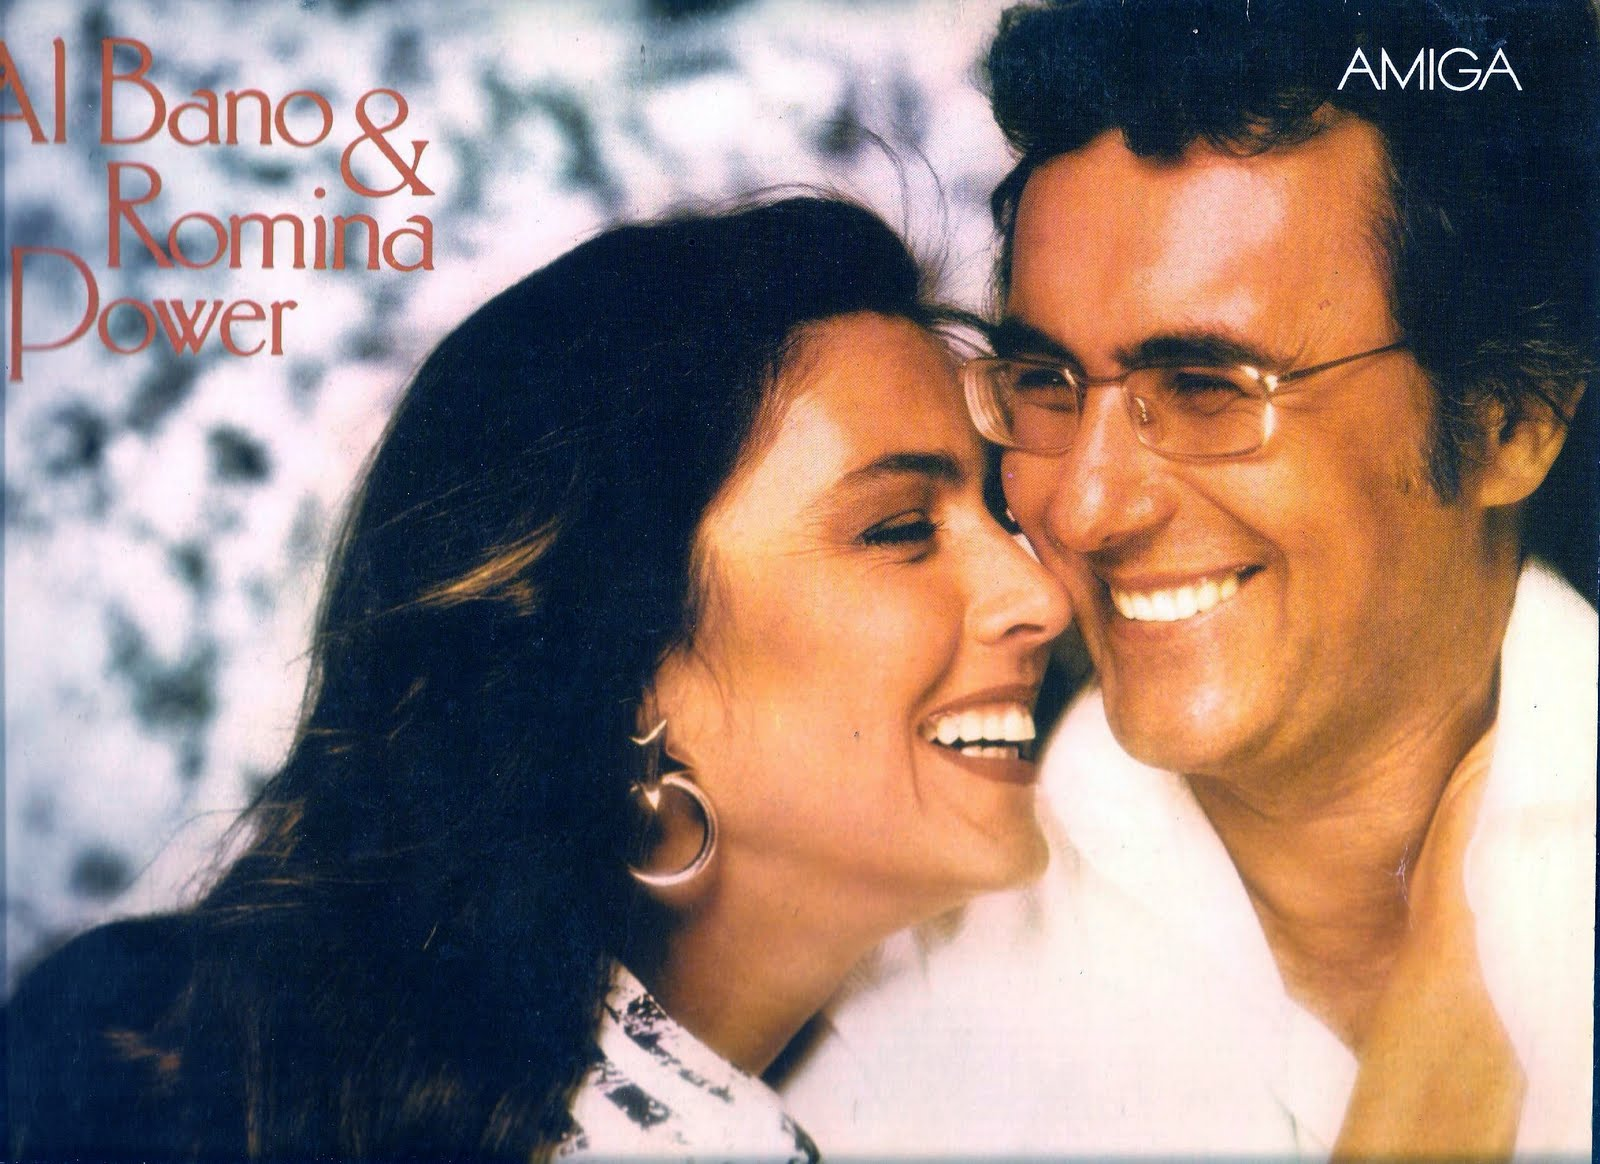 After 18 Years Al Bano And Romina Power Will Sing